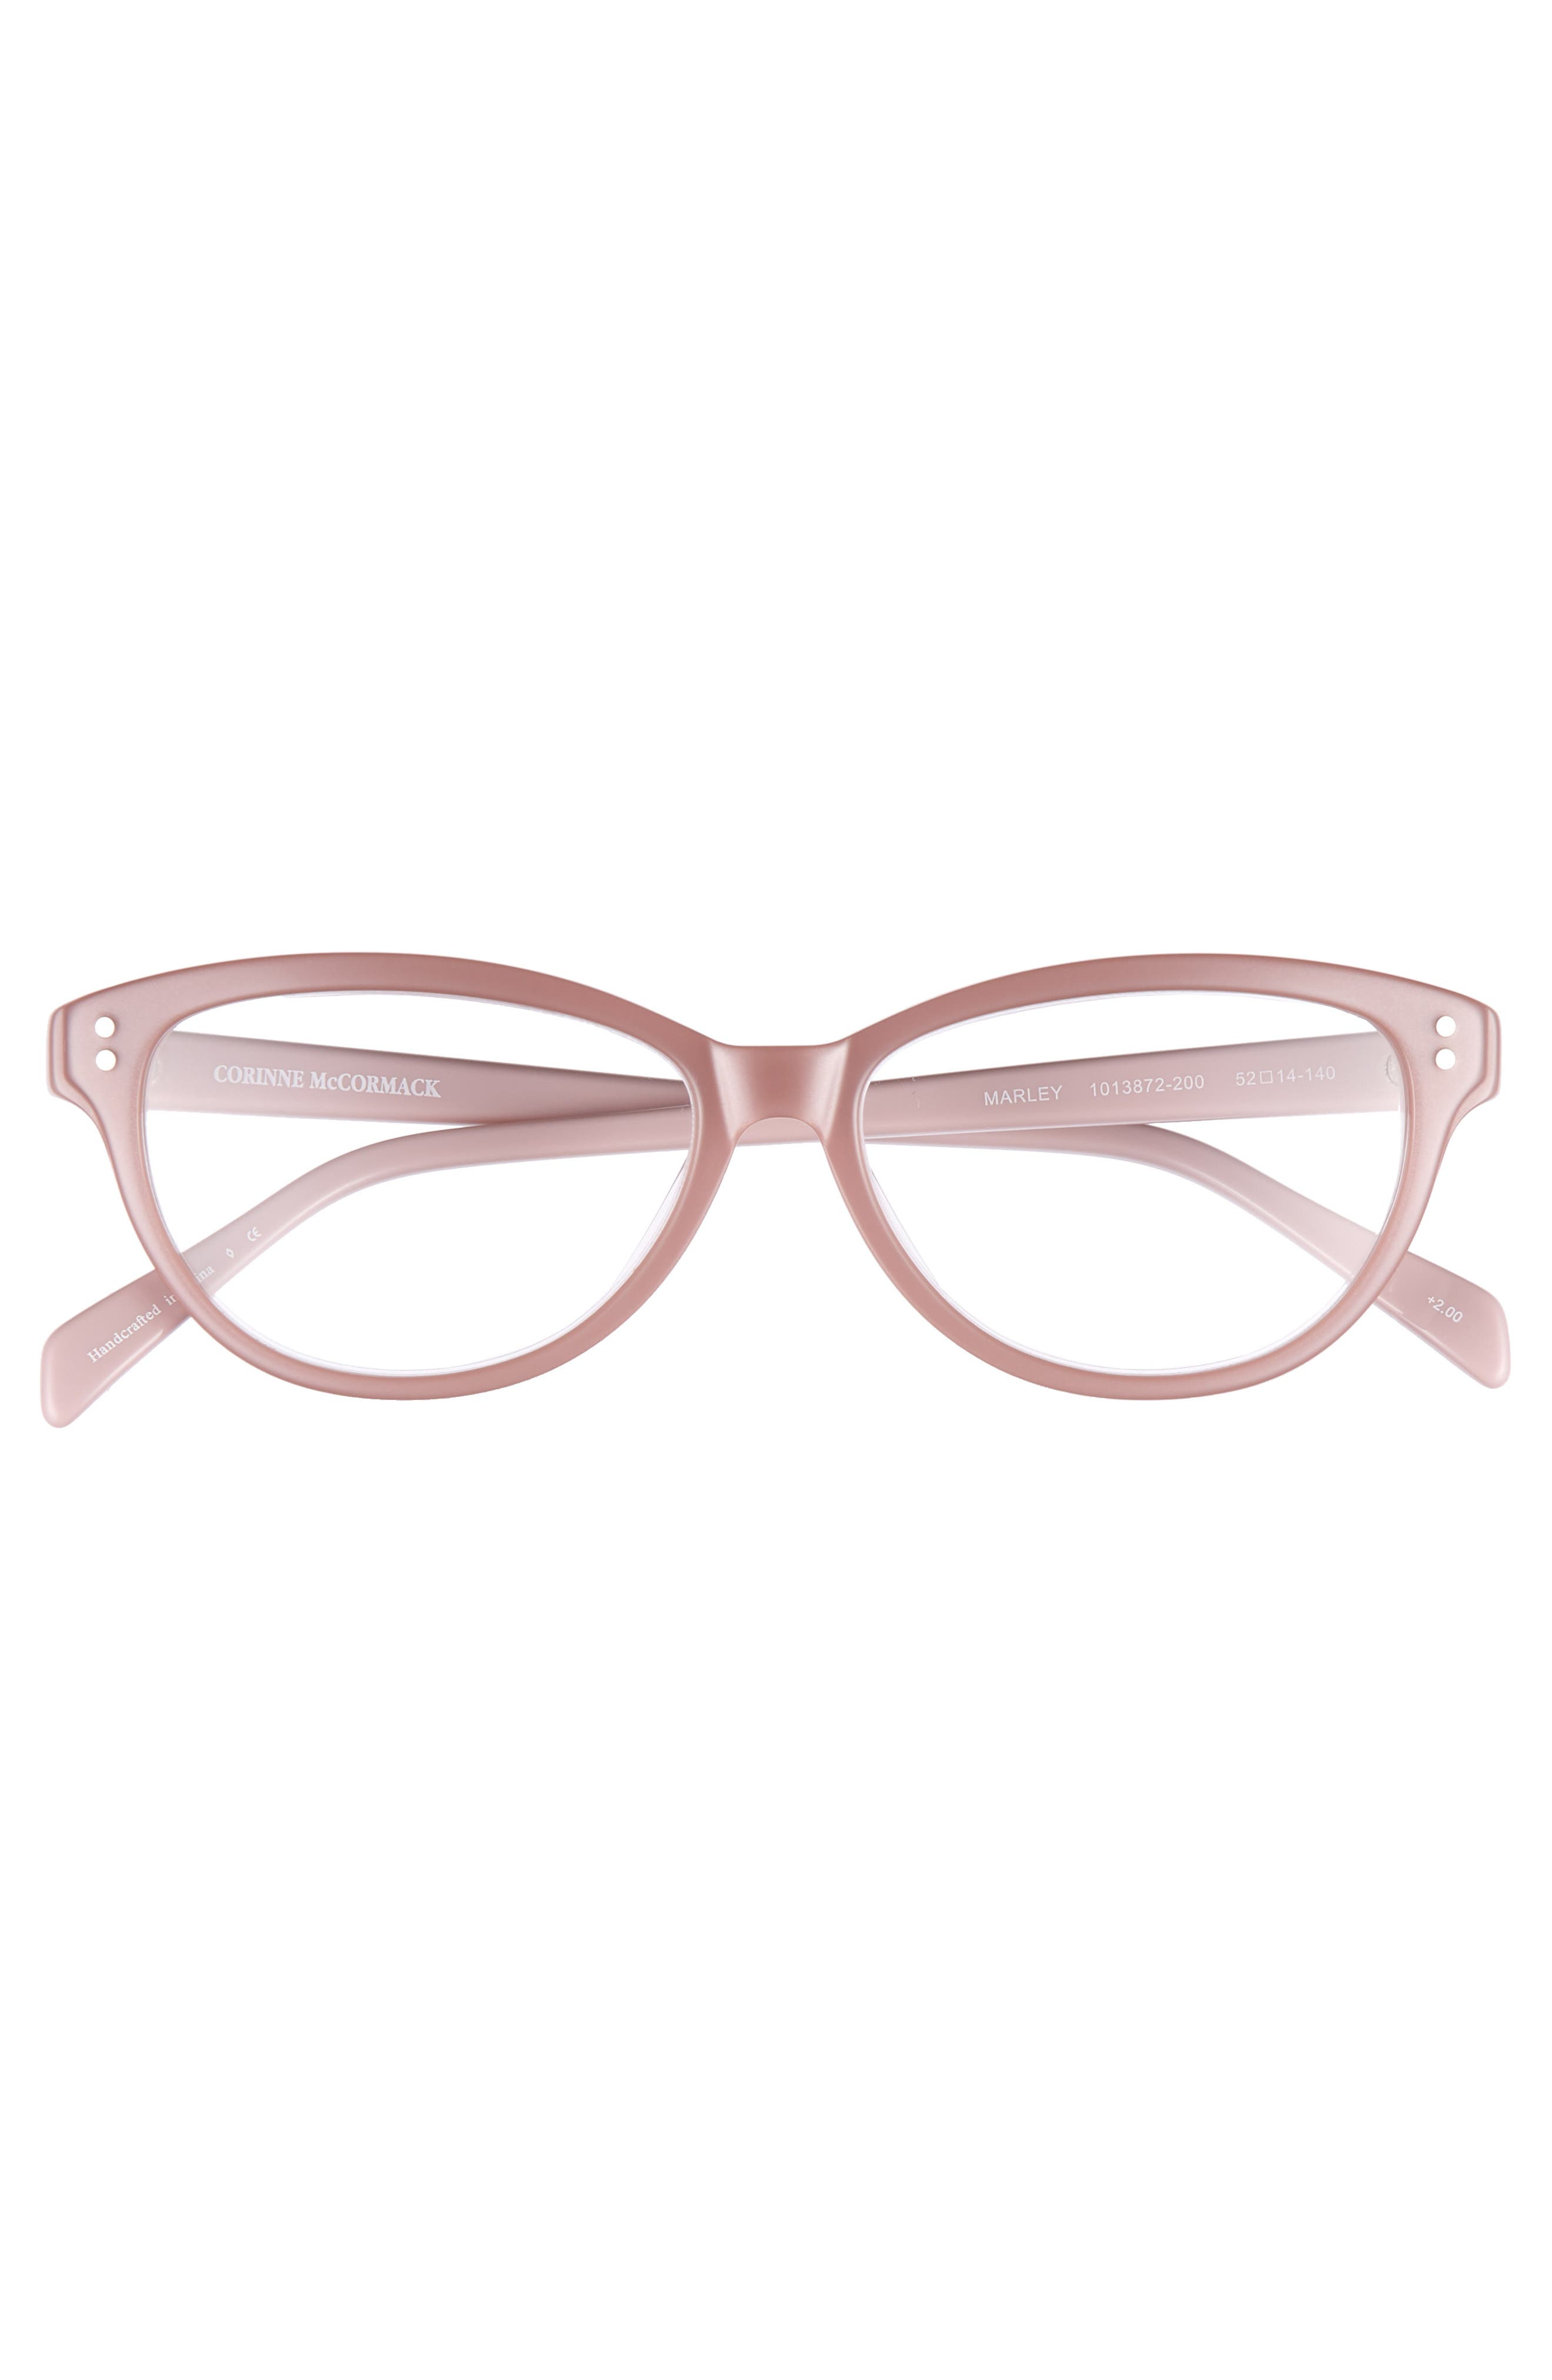 Marley 52mm Reading Glasses,                             Alternate thumbnail 3, color,                             PINK